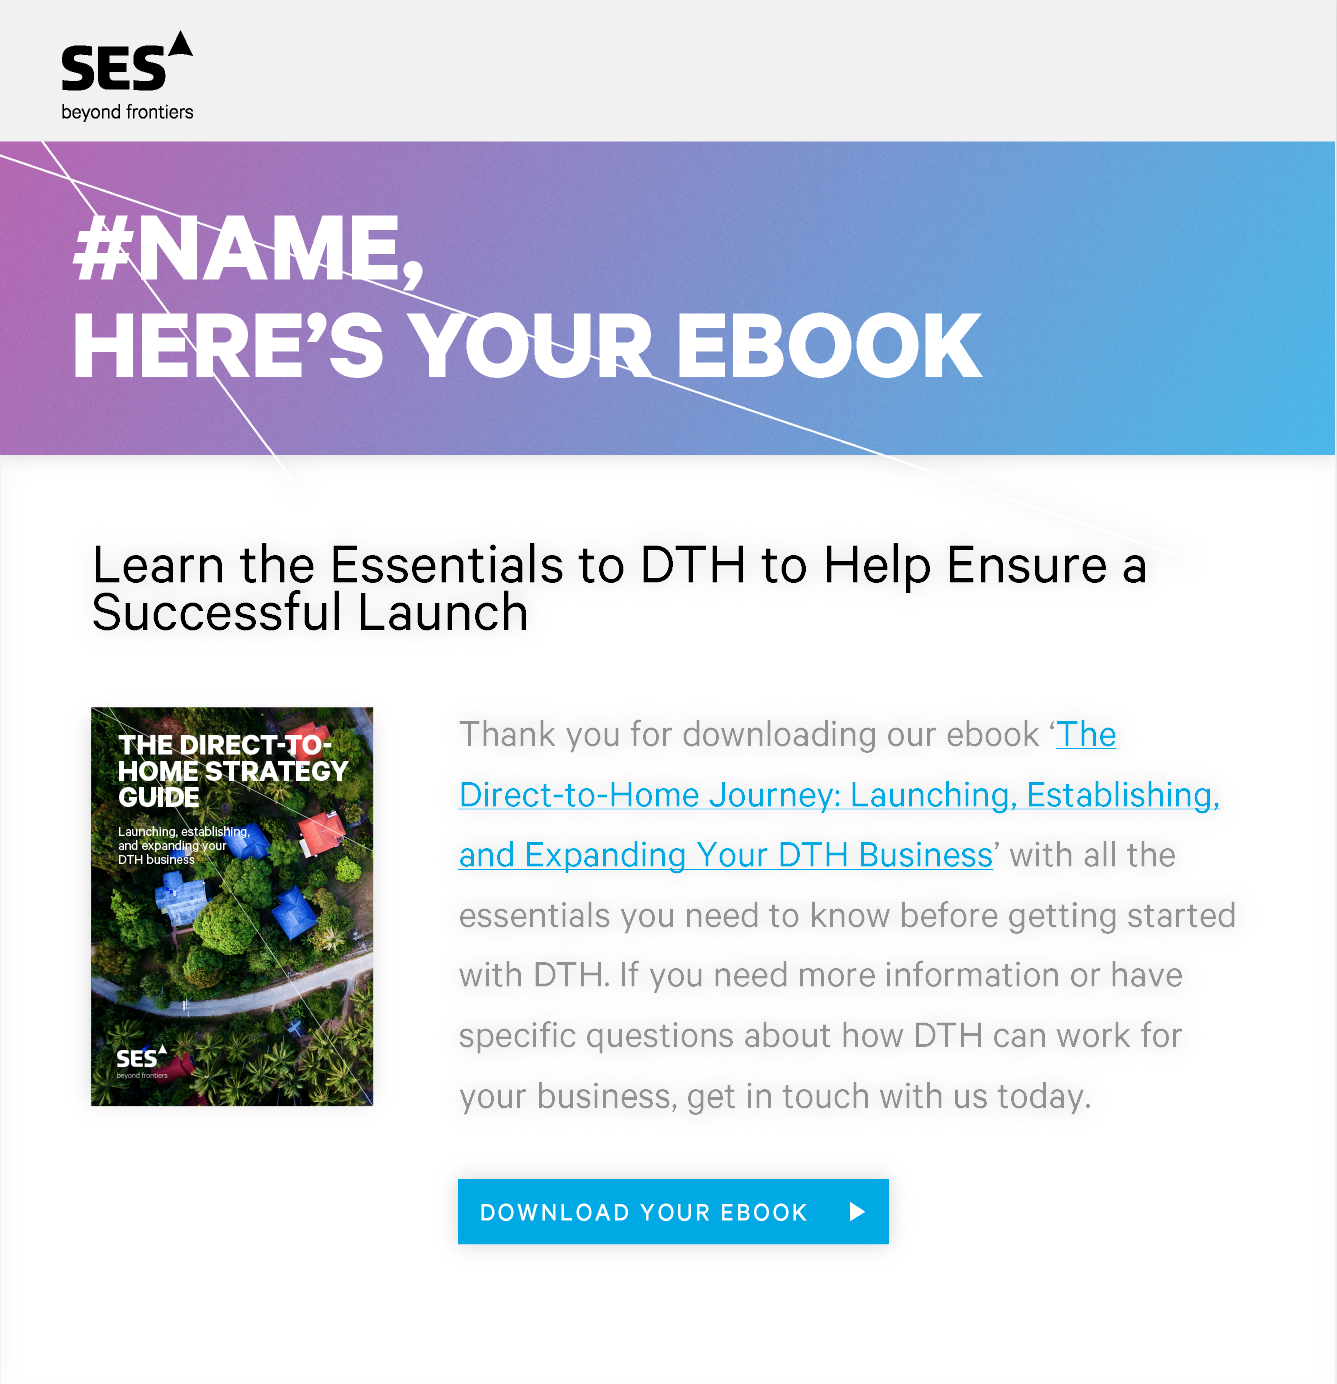 SES content marketing email marketing